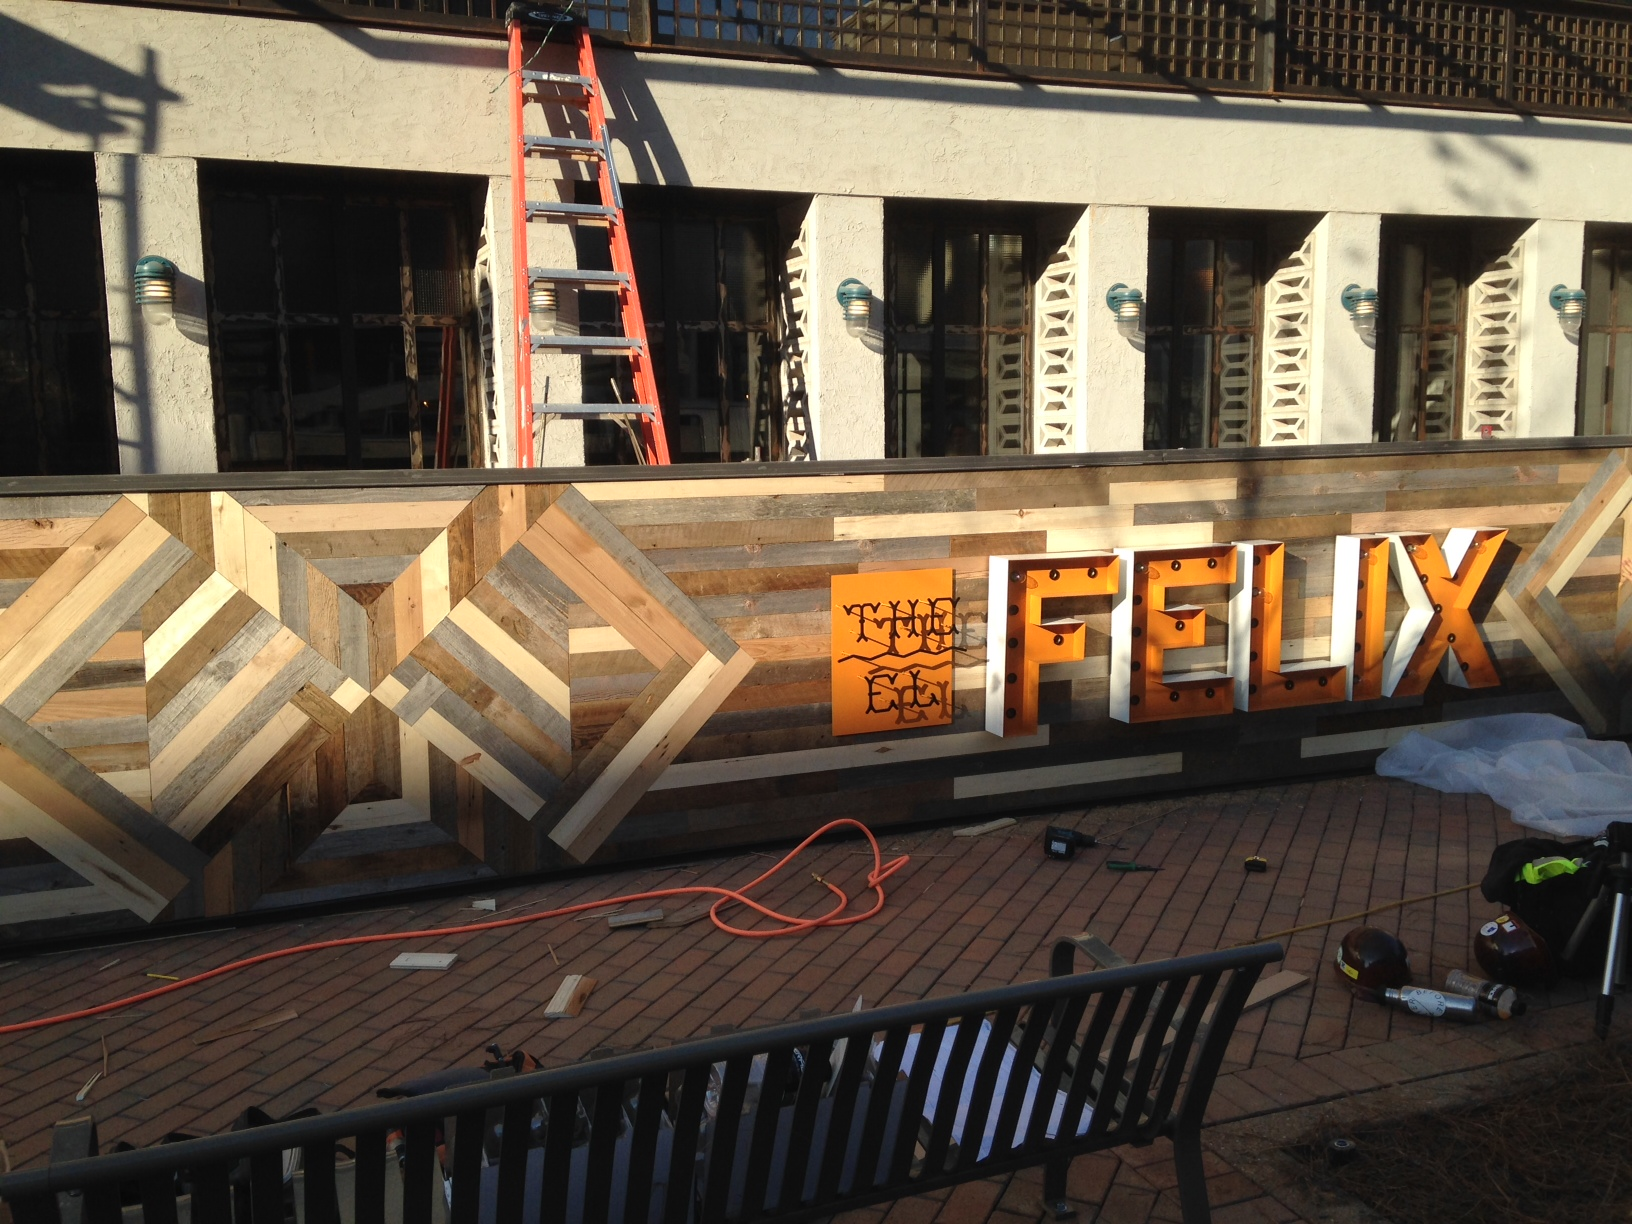 "The EL FELIX (Alpharetta, GA)- Opening in Winter 2014. The steel frame was fabricated by another contractor. We sheeted it in plywood then laid out the pattern and filled in with aged 1/2""oak strips in different patinas. Over 1500 linear feet of wood makes up the 35' sign."